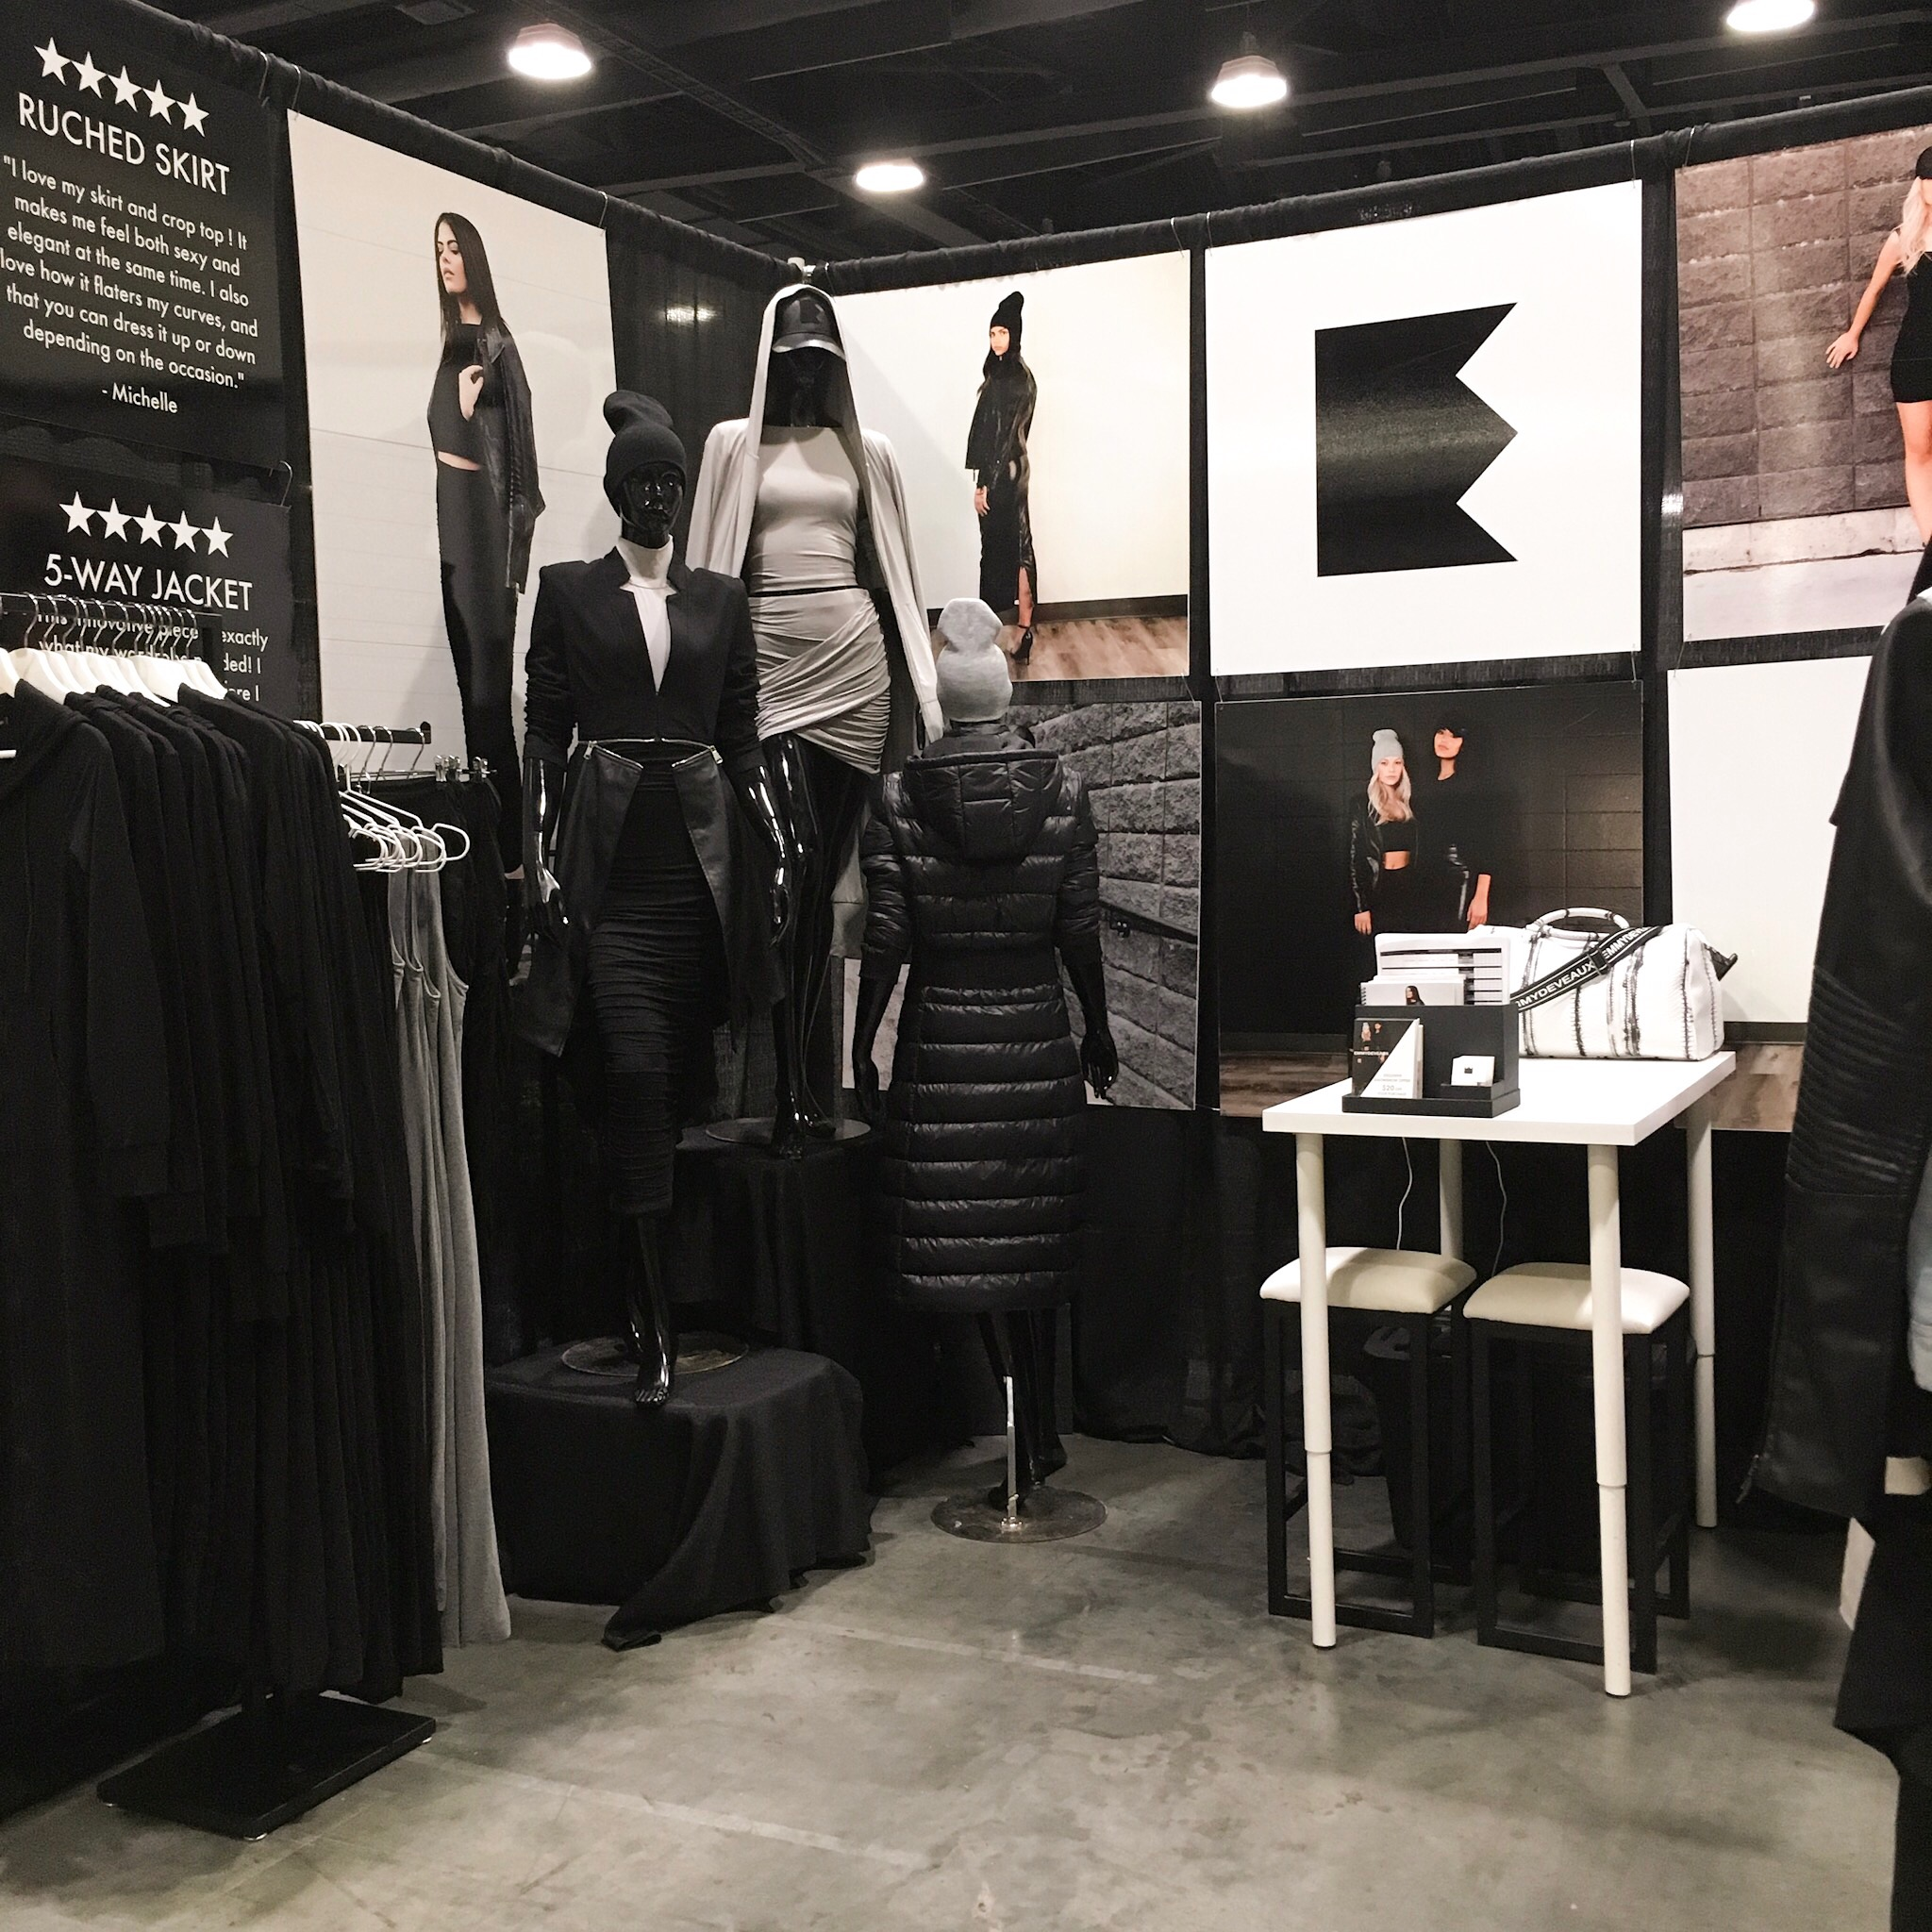 EMMYDEVEAUX DISPLAY AT KNOWSHOW IN VANCOUVER ON JANUARY 16, 2019.